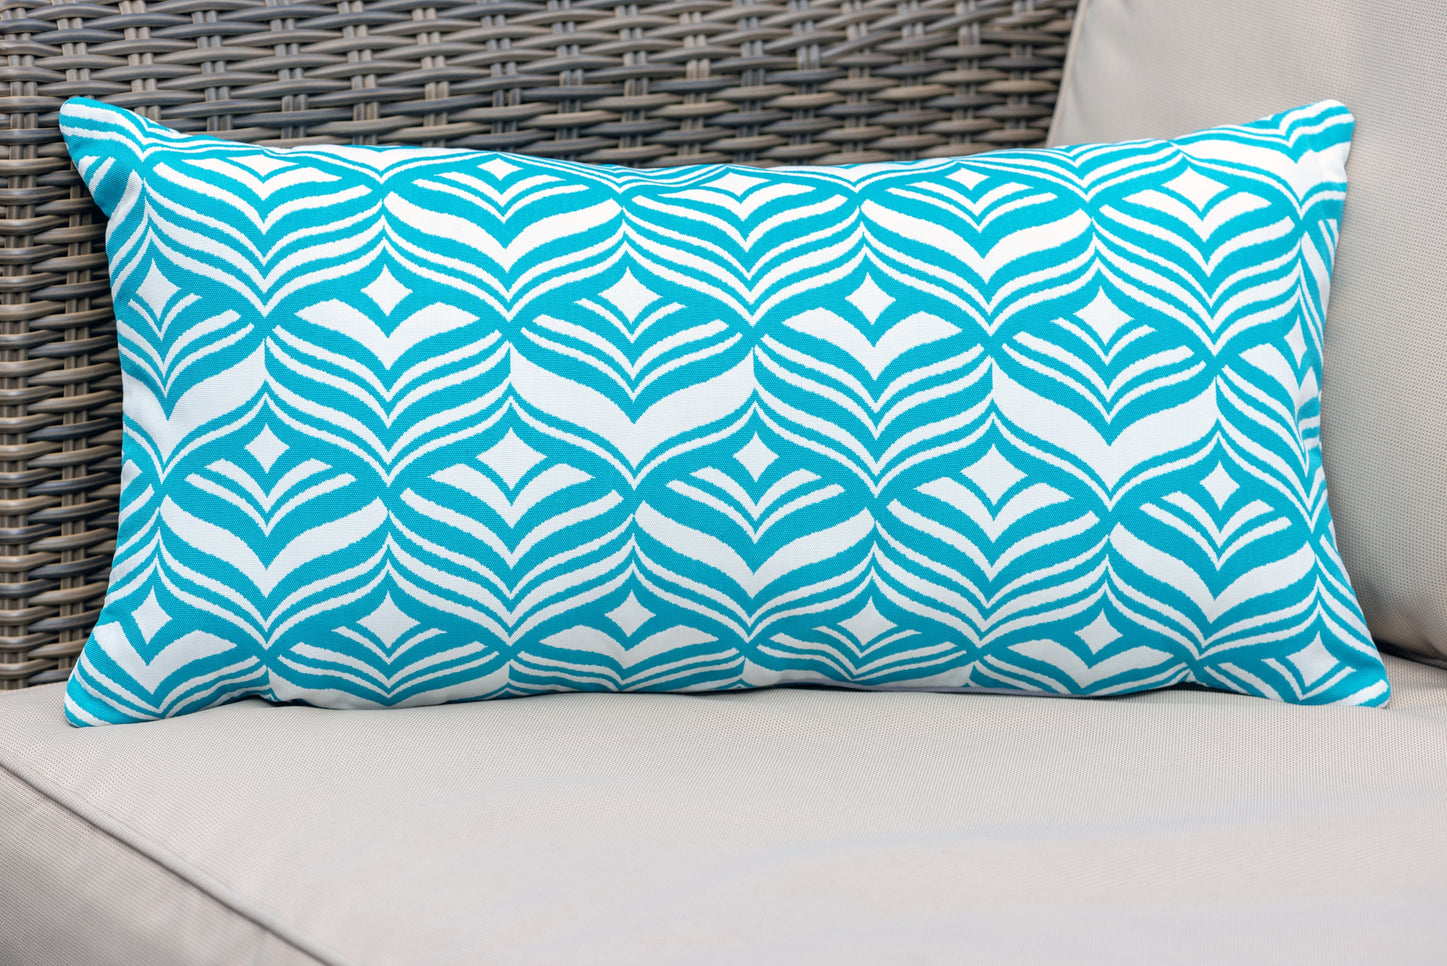 Armadillo Sun rectangular cushion in turquoise blue and white tulip pattern